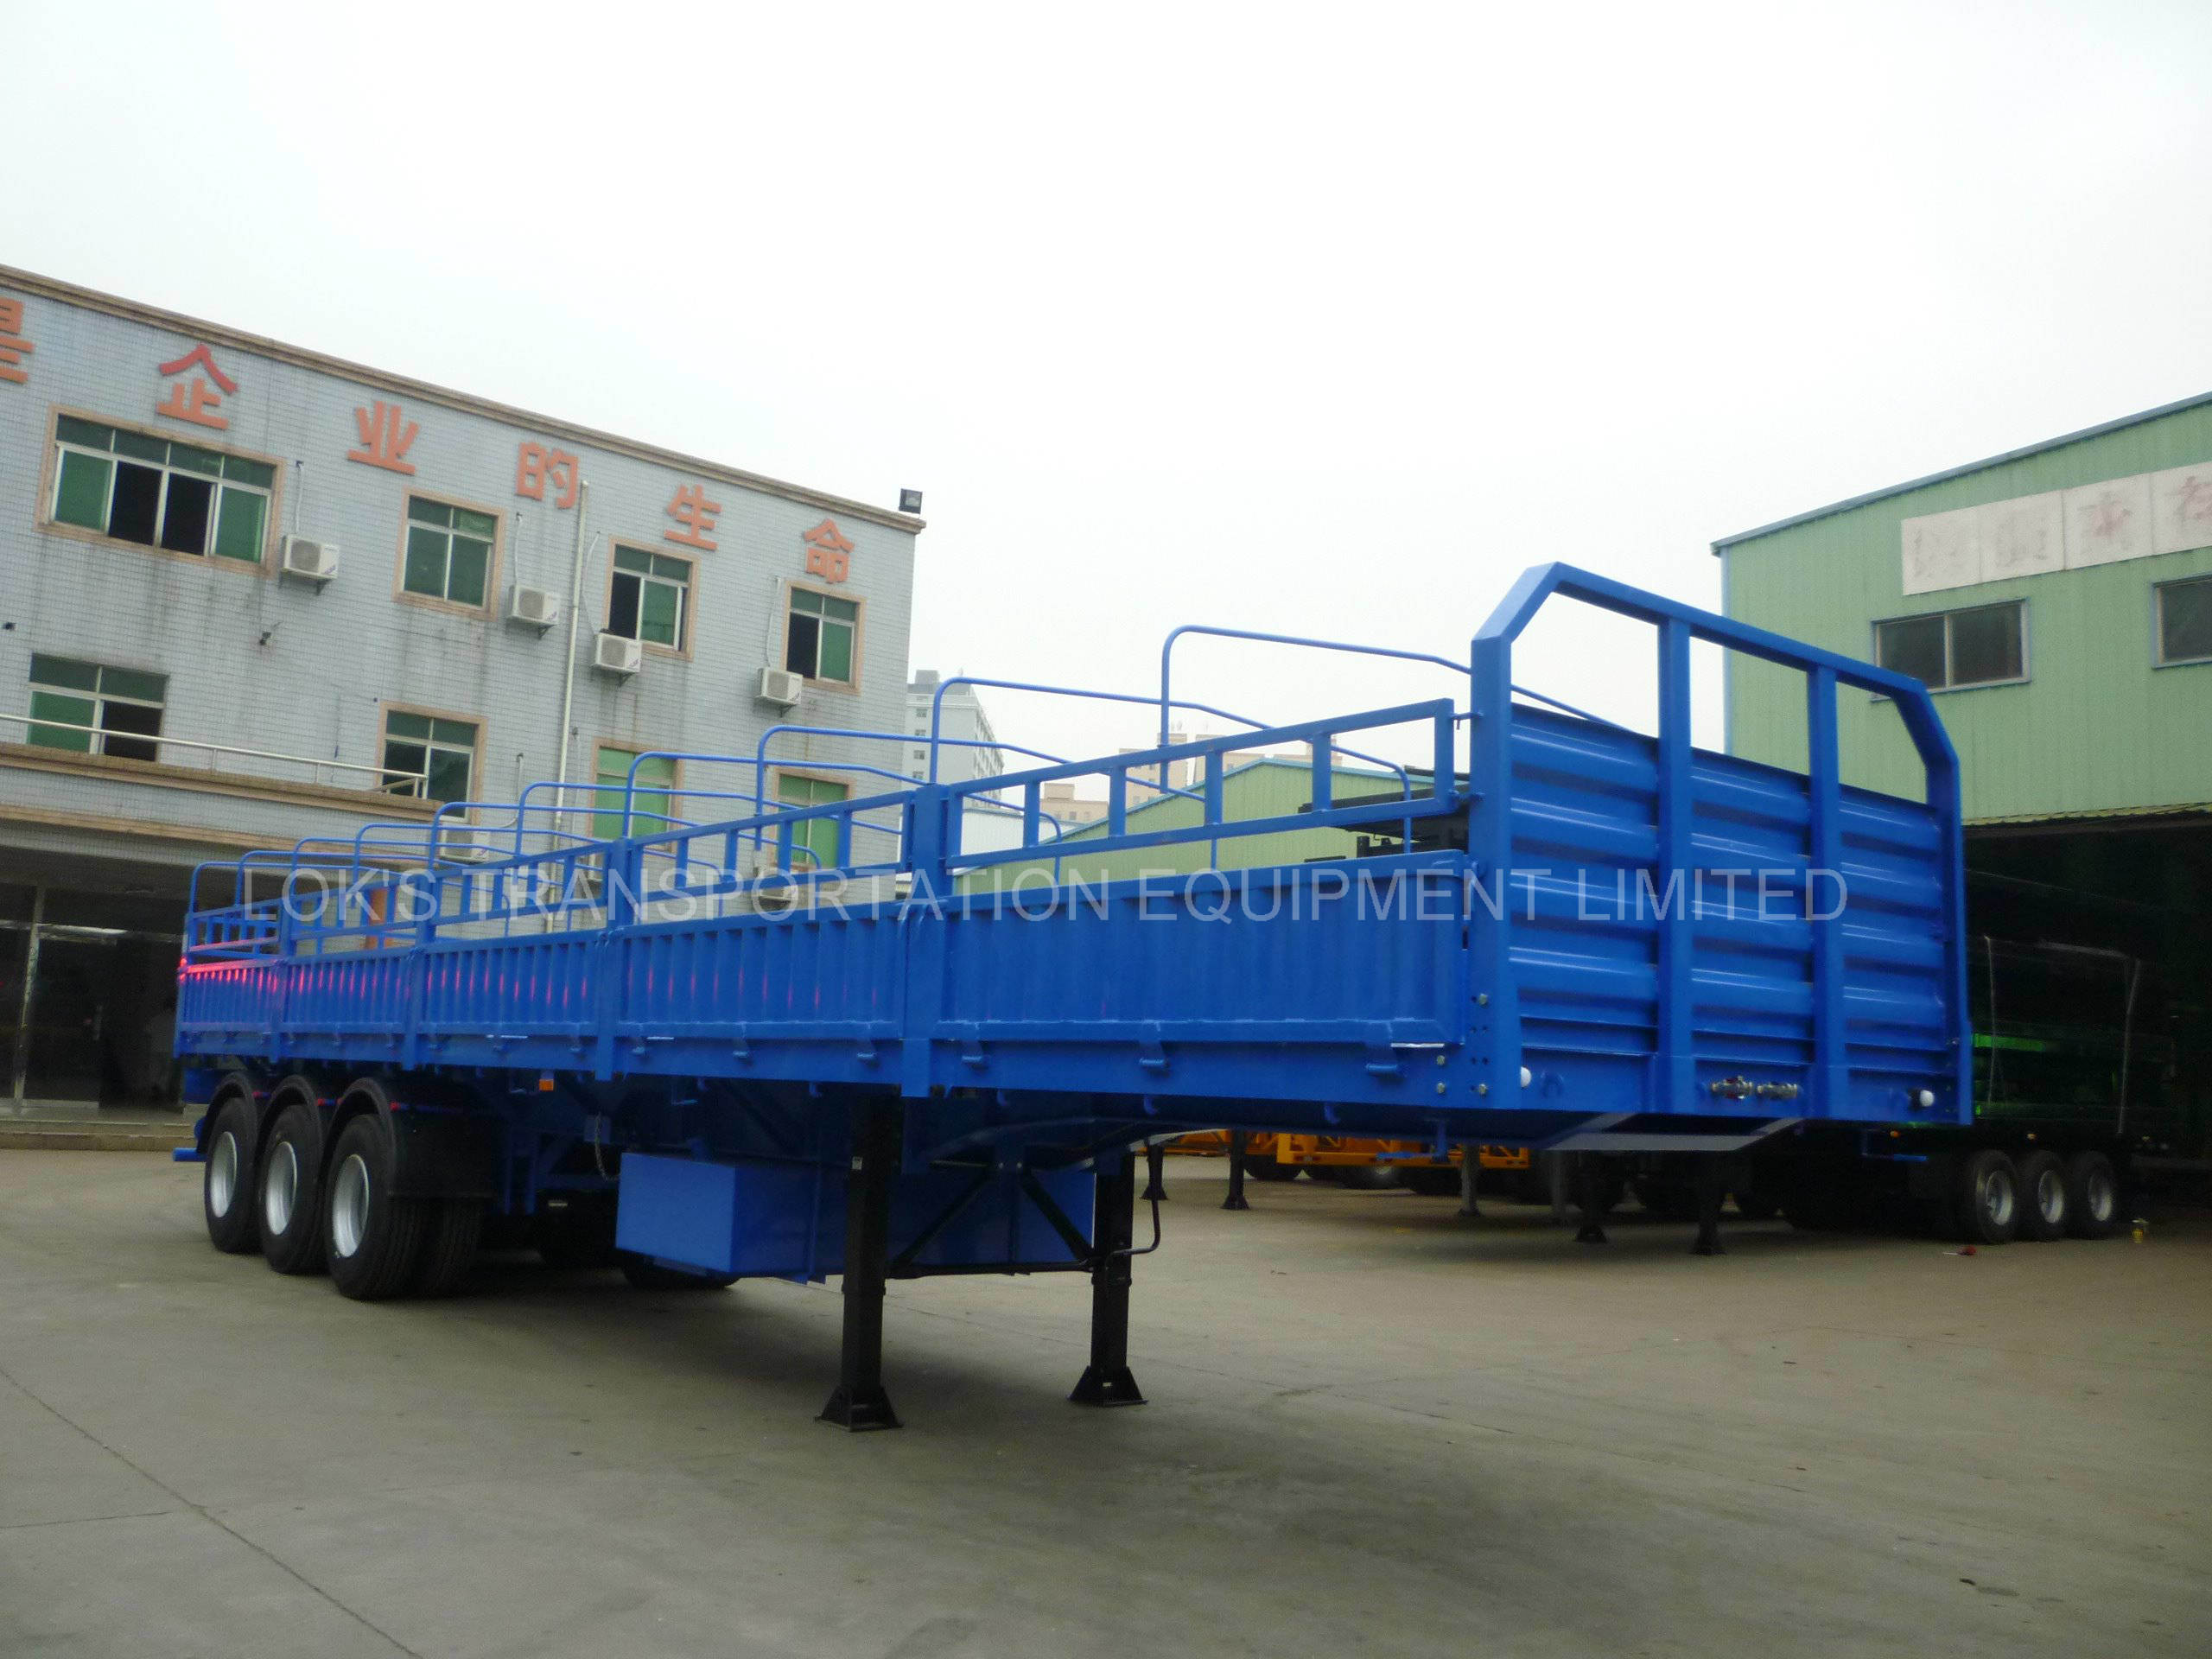 40 Feet 3axle Side Wall Semi Trailer (Africa Market)